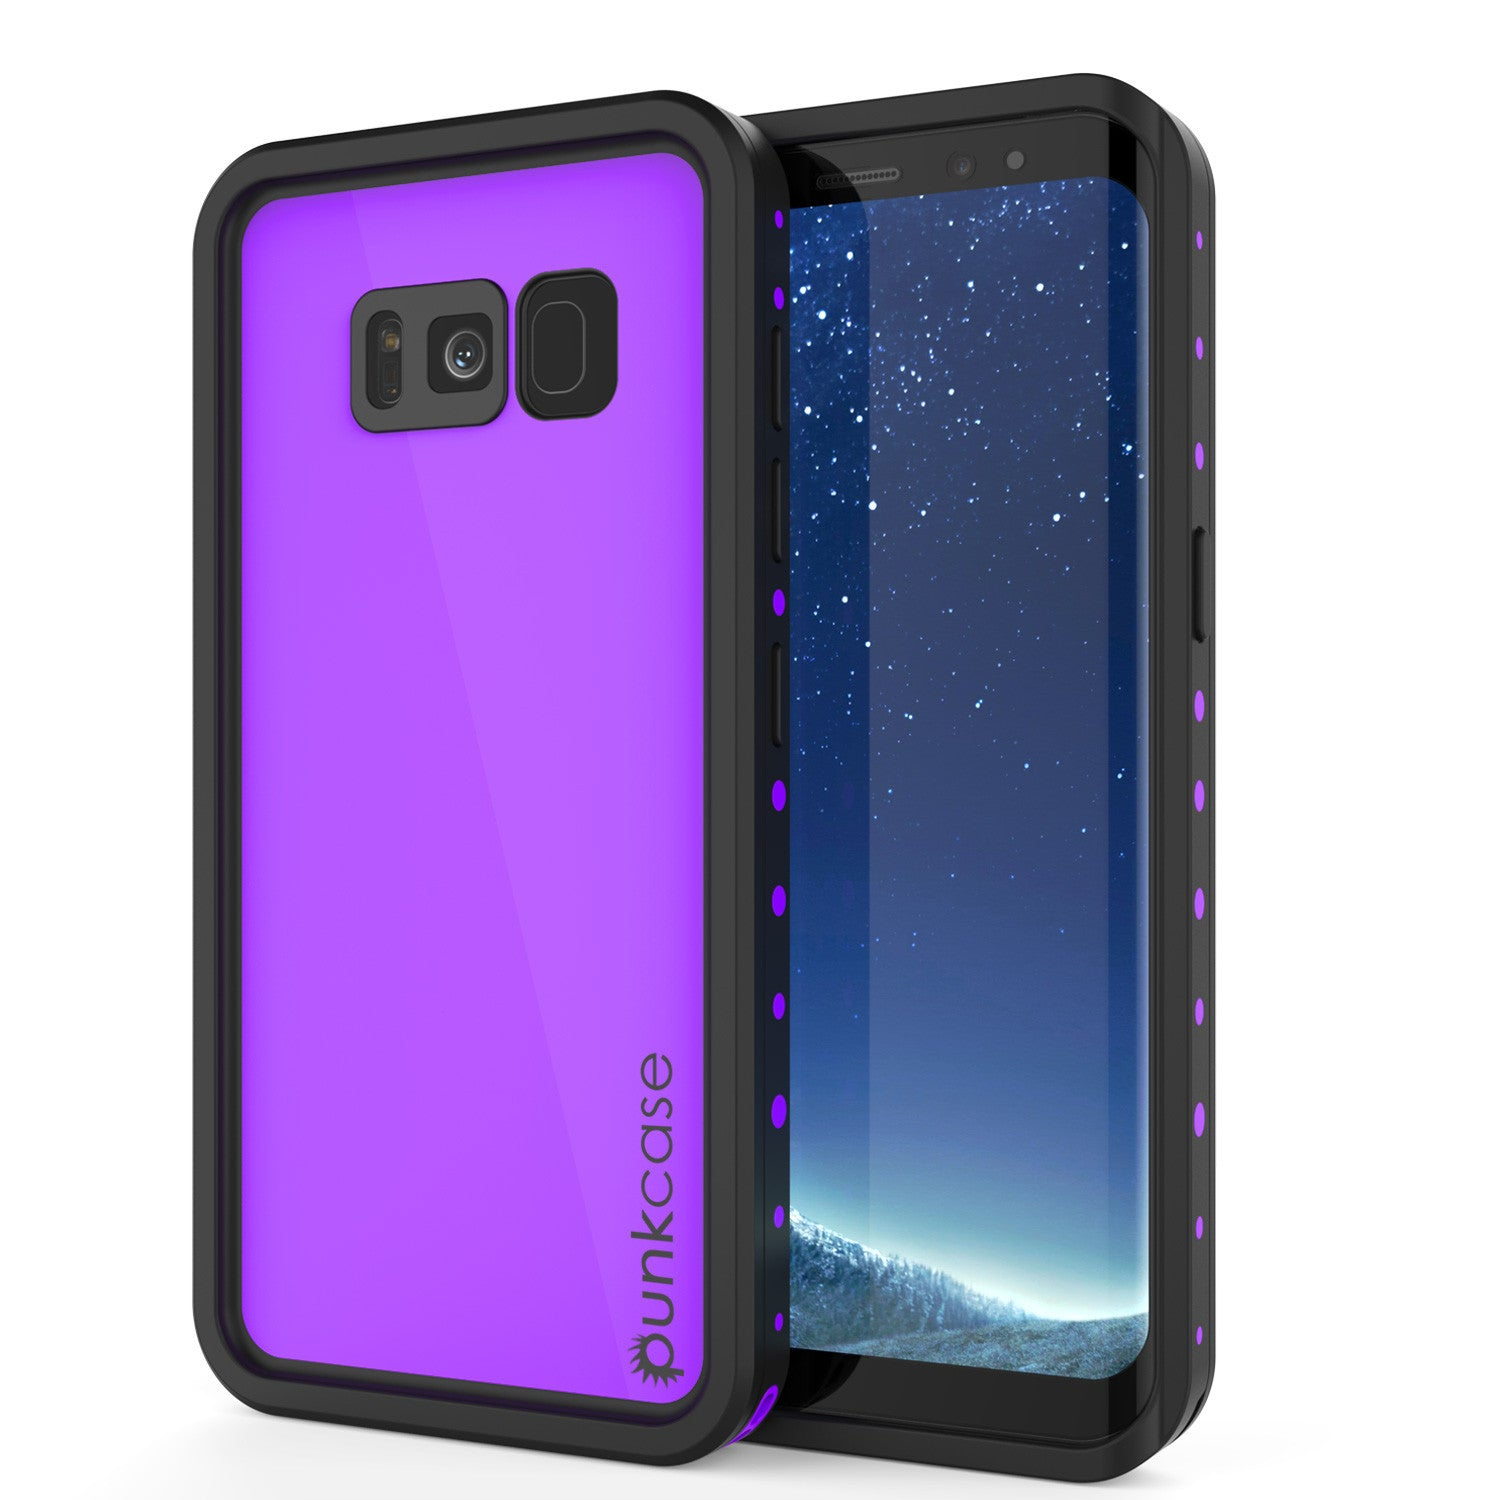 Galaxy S8 Waterproof Case PunkCase StudStar Purple Thin 6.6ft Underwater IP68 Shock/Snow Proof